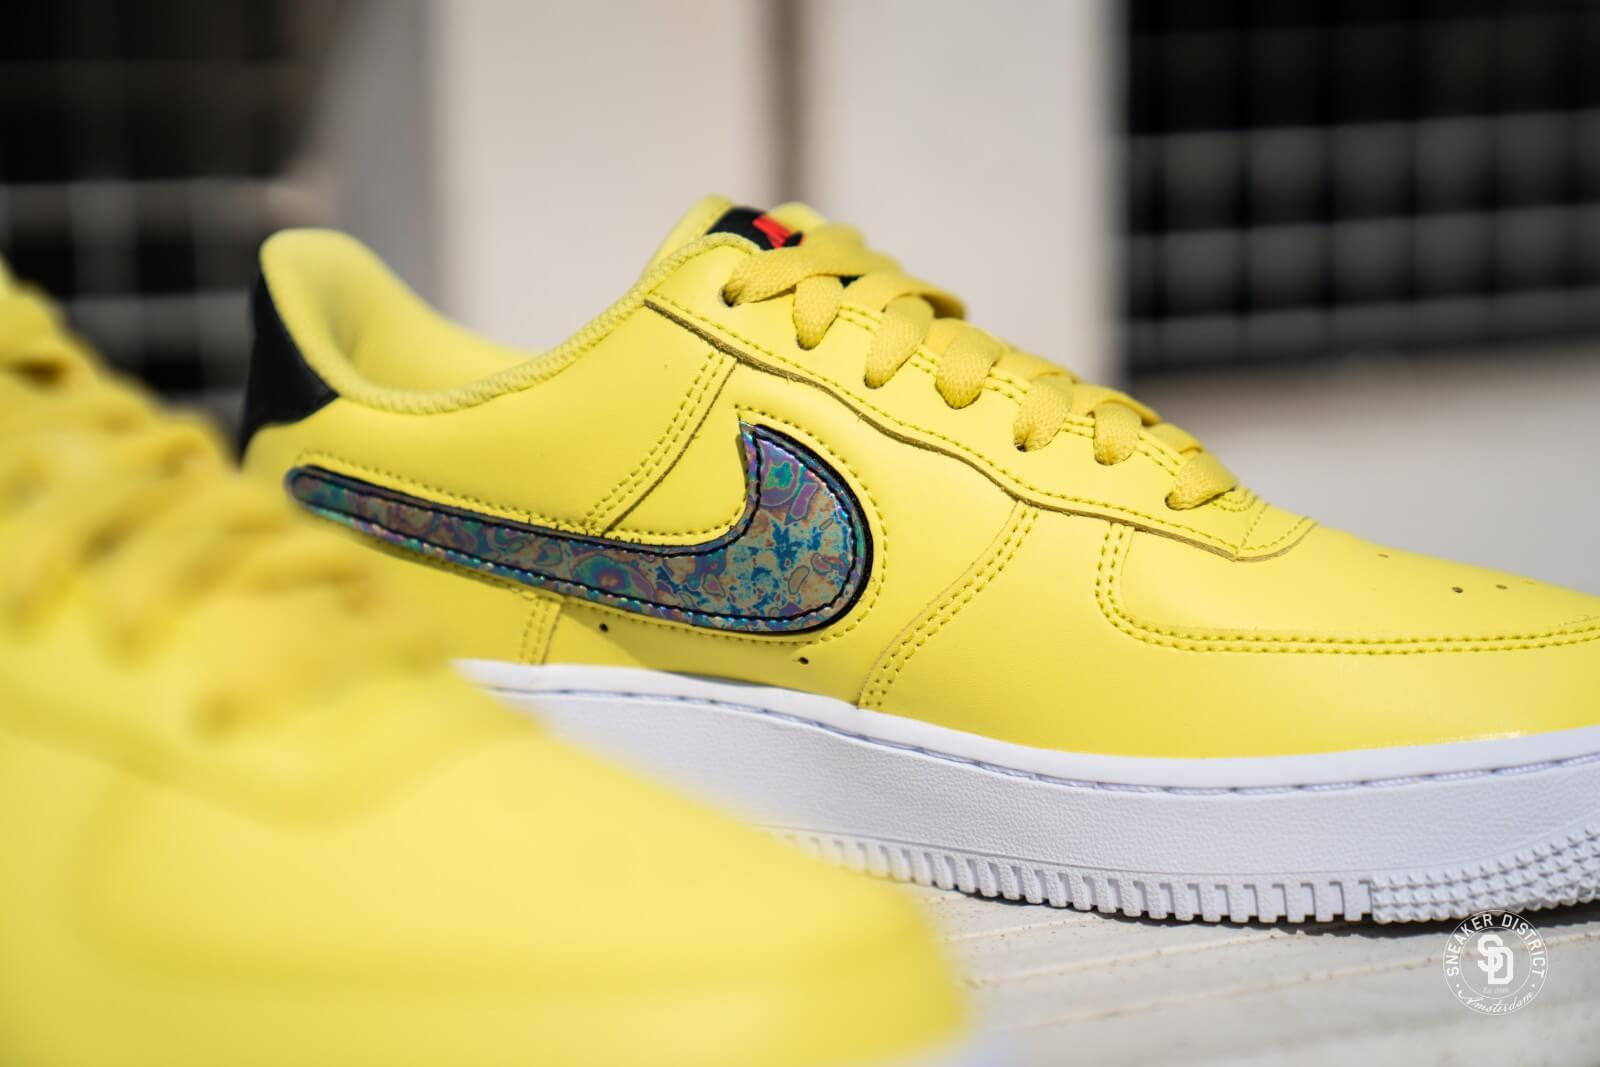 sucesor conjunto Izar  Nike Air Force 1 '07 LV8 3 Yellow Pulse/Black-White - CI0064-700